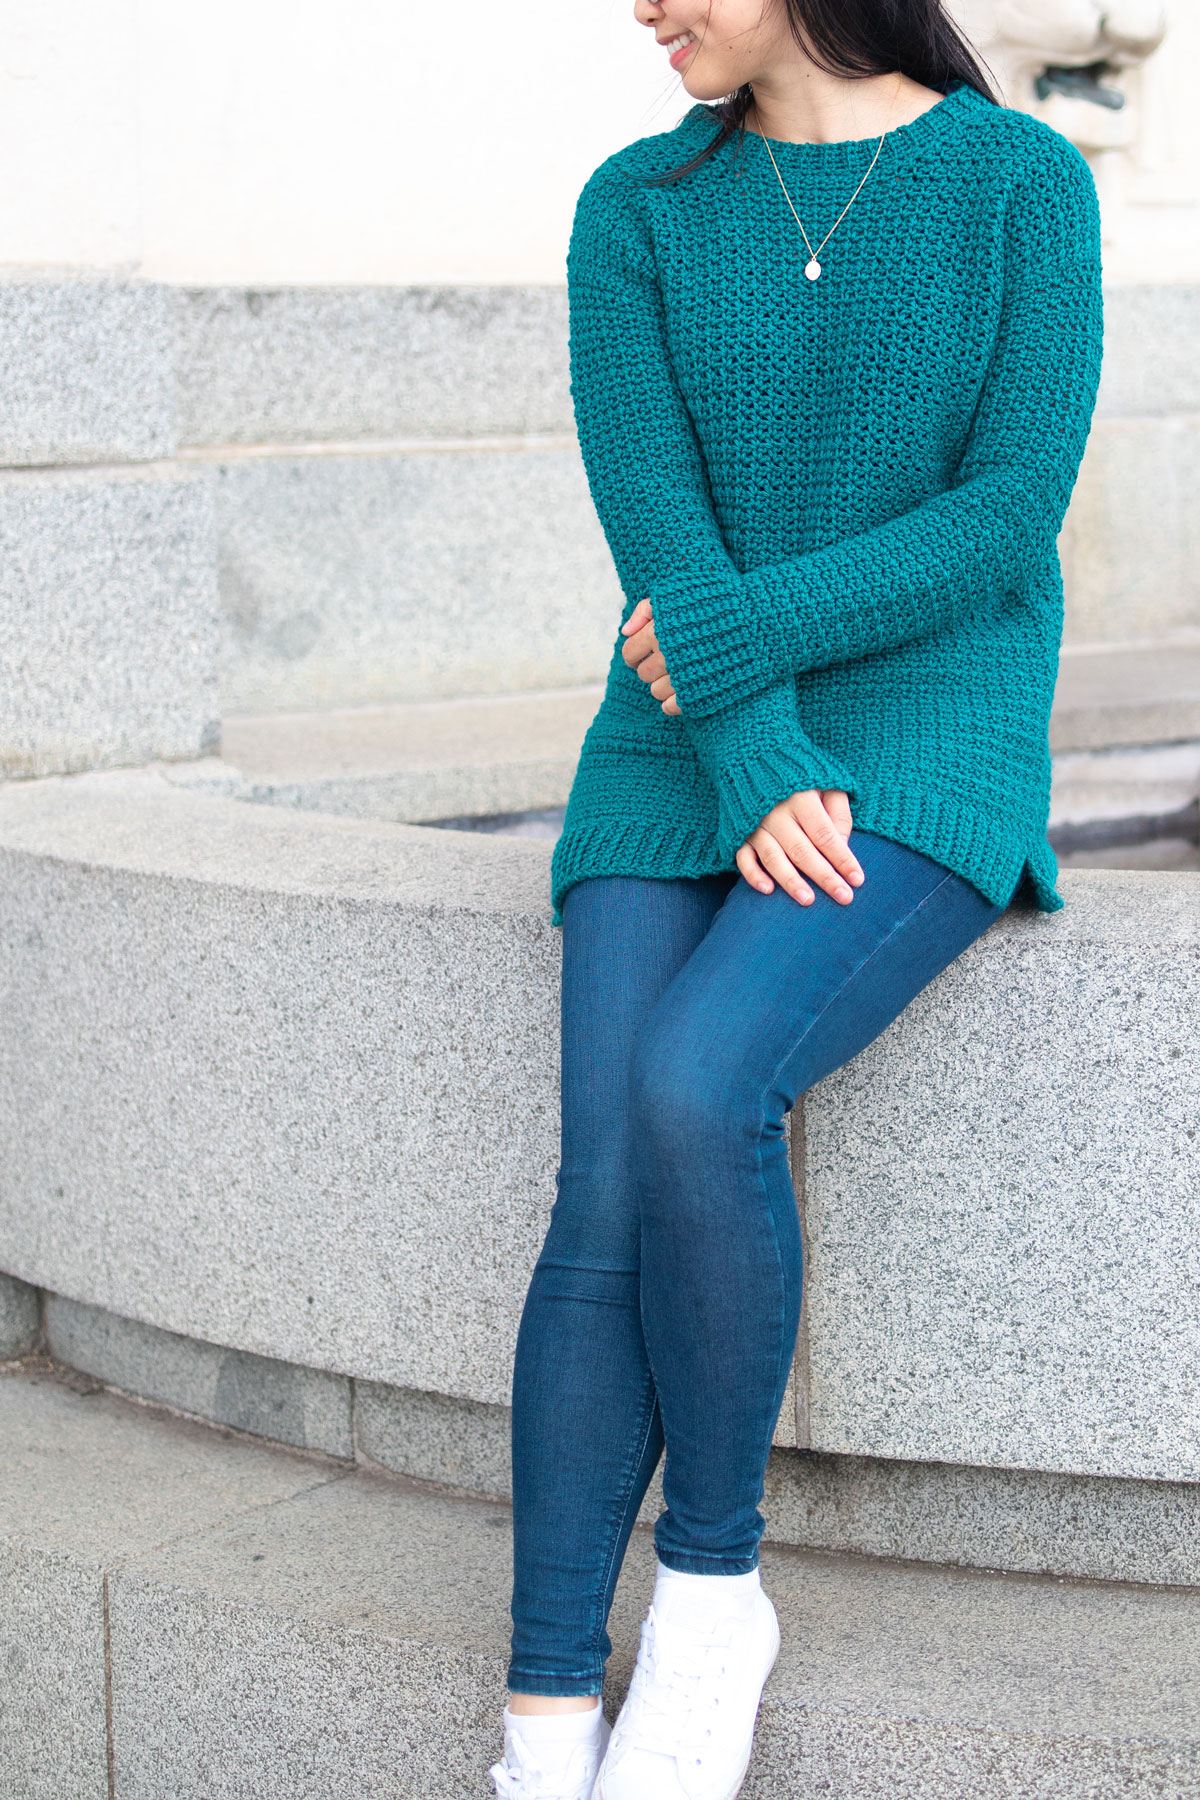 long crochet sweater green pullover blue jeans sitting on ledge